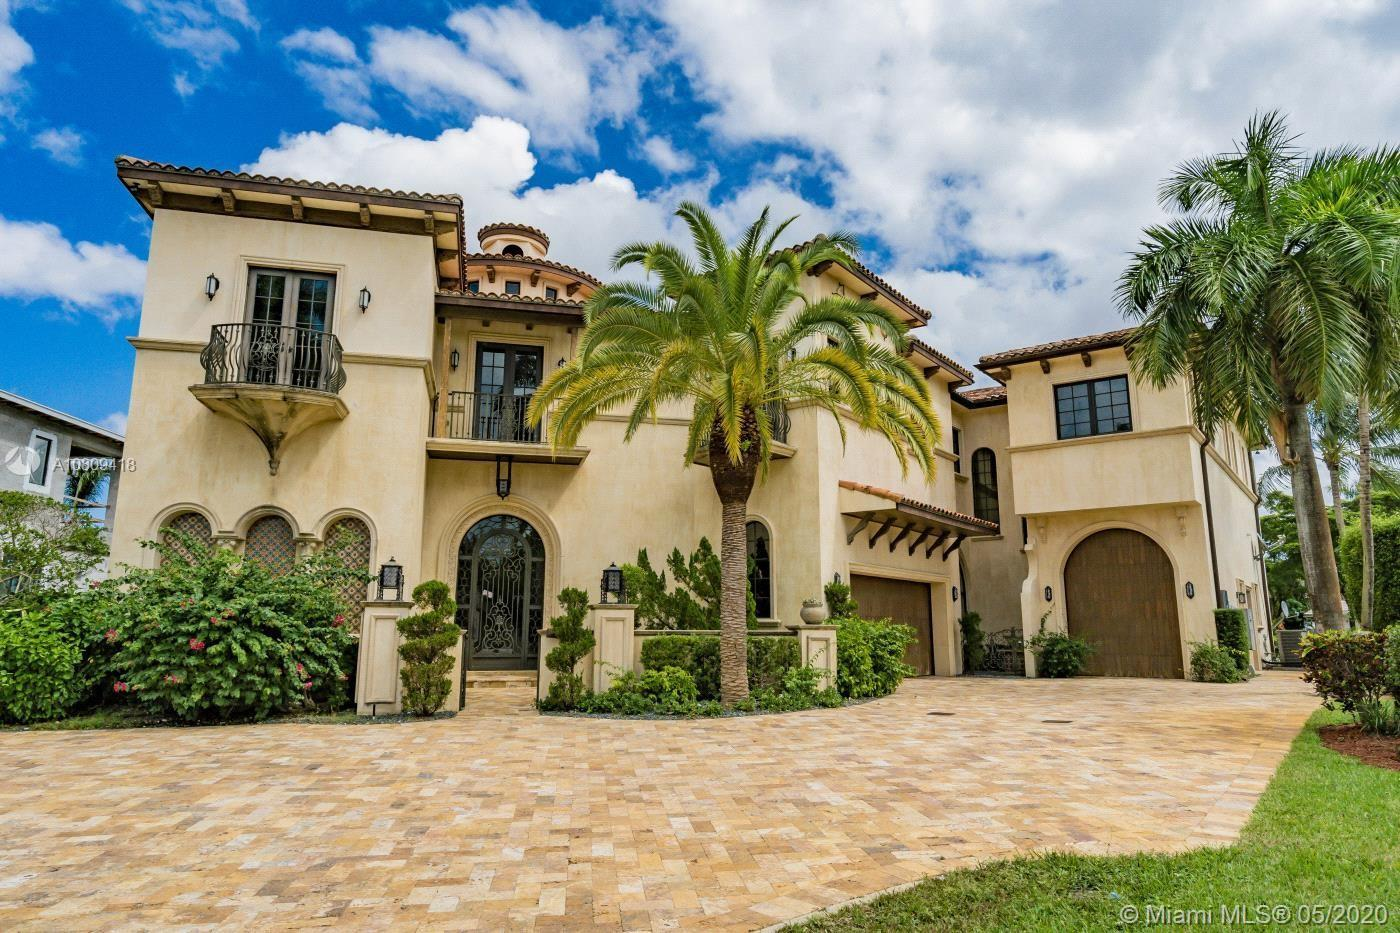 Welcome to St. Andrews Country Club and this majestic Spanish Renaissance luxury masterpiece. Luxury